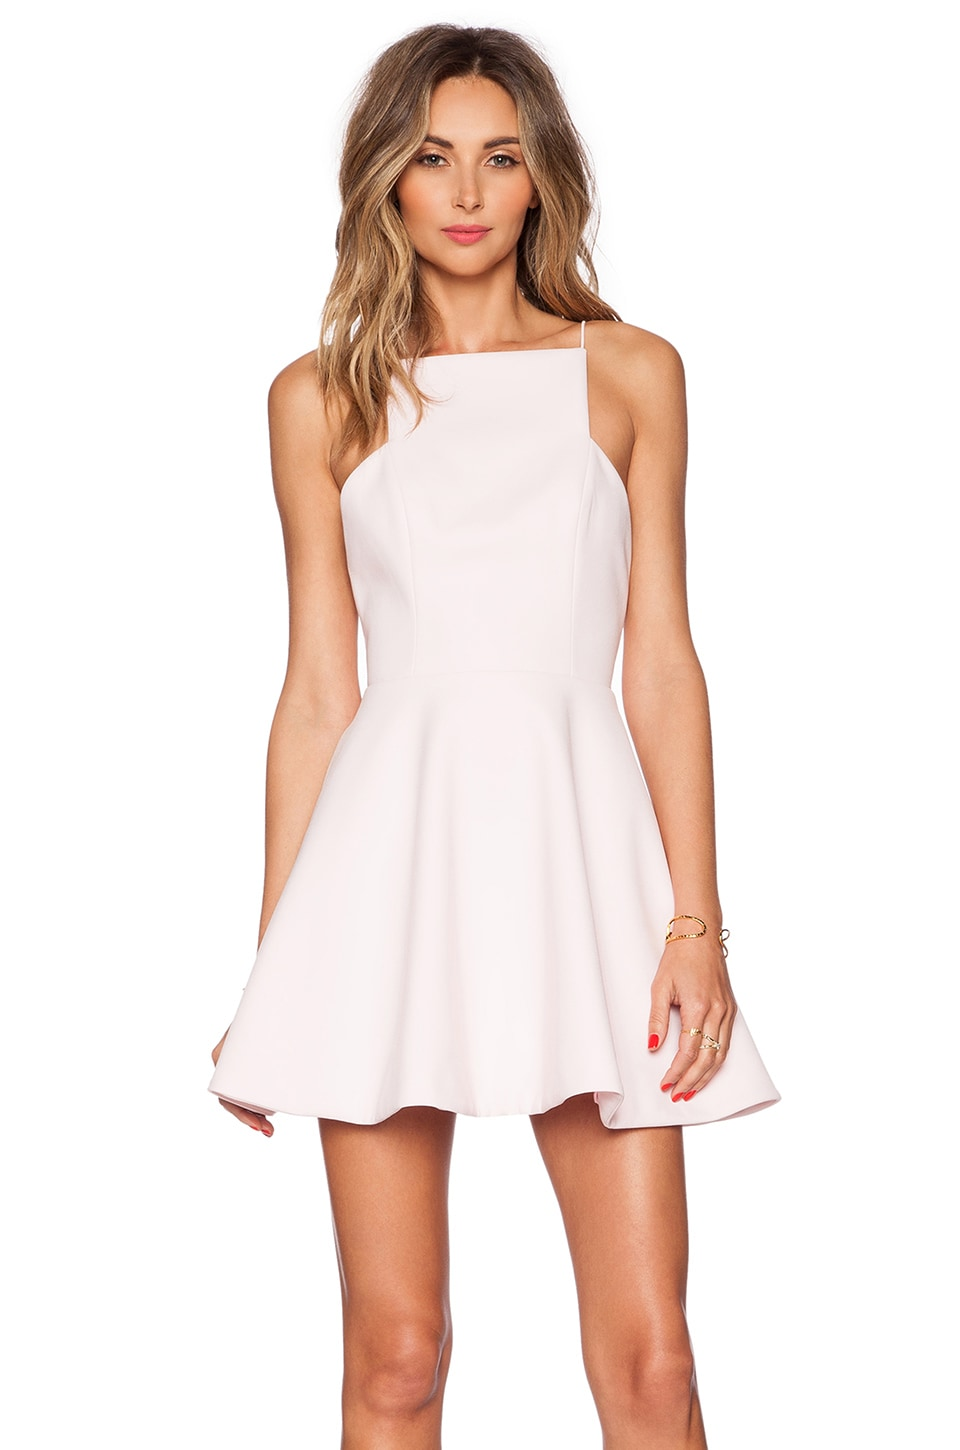 Restless Heart Mini Dress